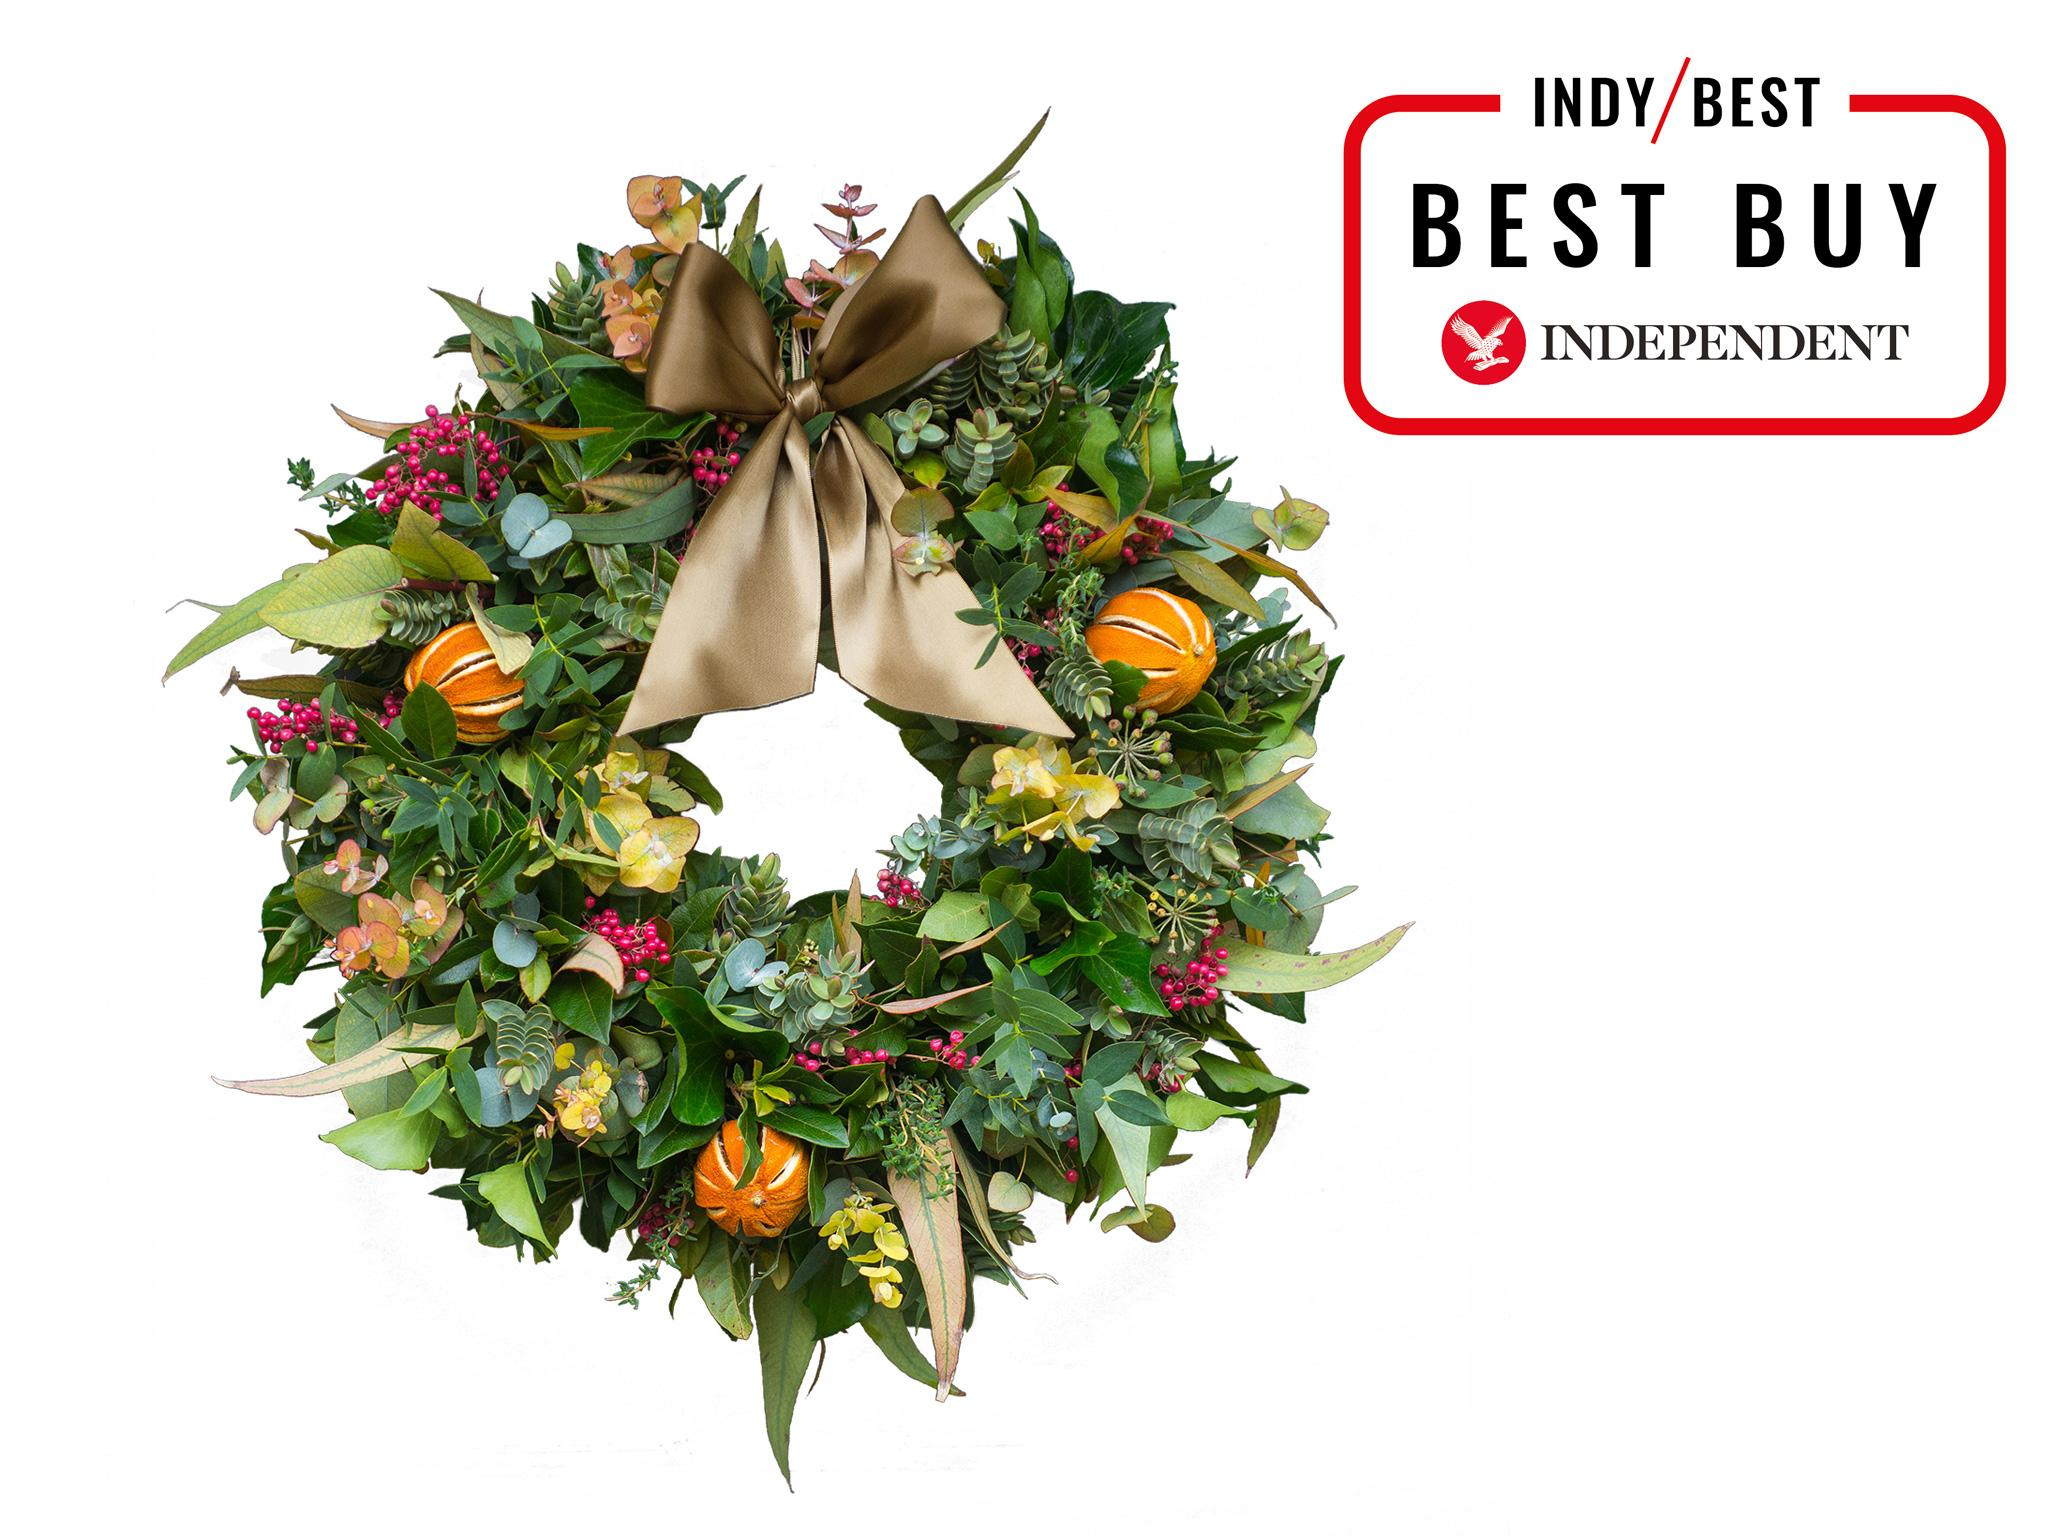 The Real Flower Company Citrus and Spice Door Wreath 35.5-38cm diameter £85 The Real Flower Company  sc 1 st  The Independent & 13 best real wreaths | The Independent